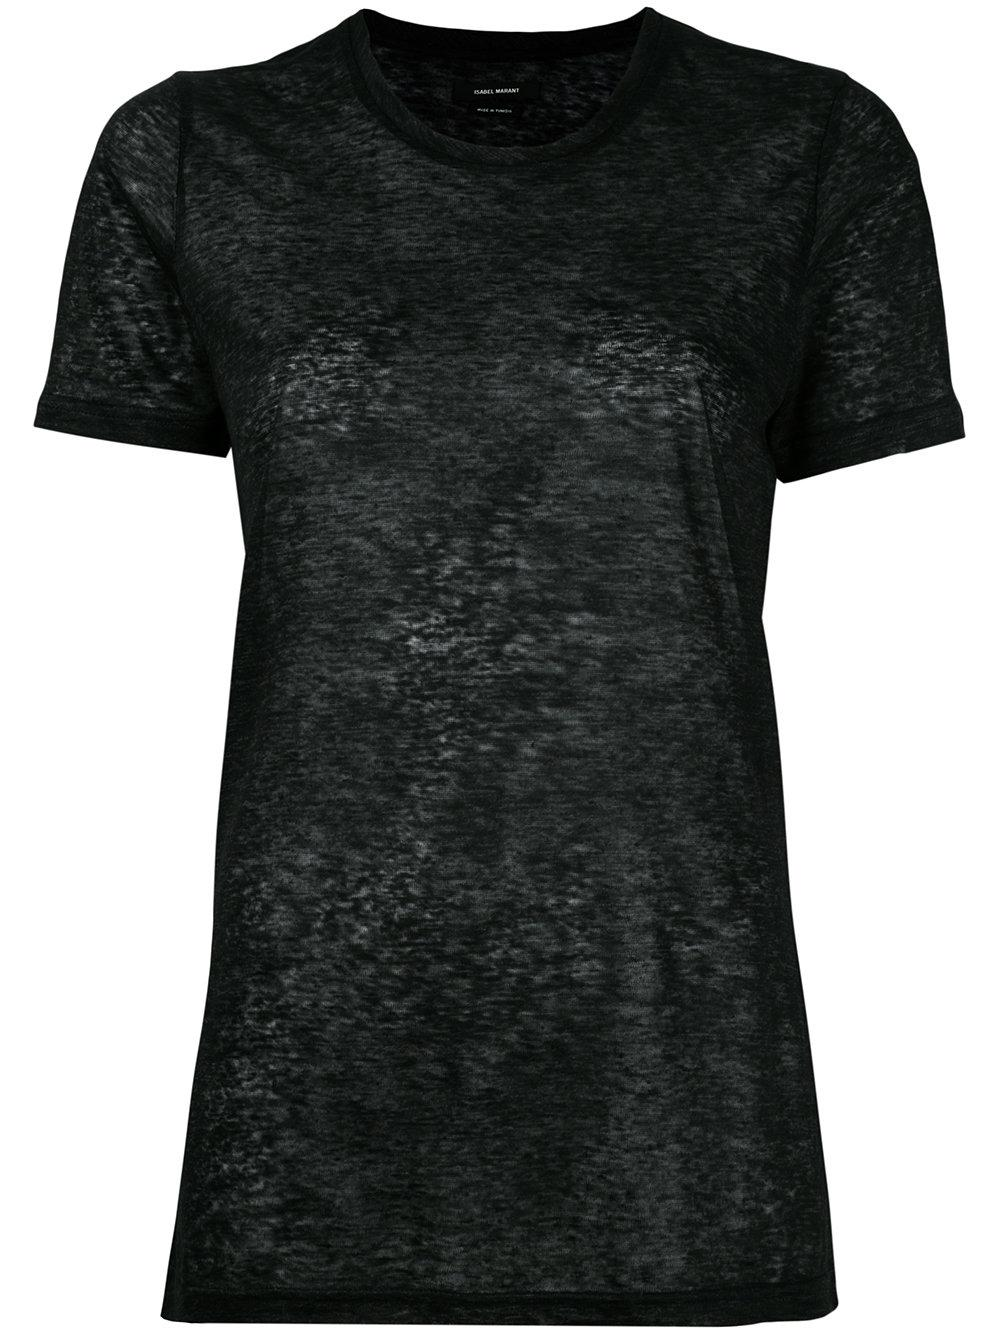 Isabel marant madjo t shirt in gray lyst for Isabel marant t shirt sale